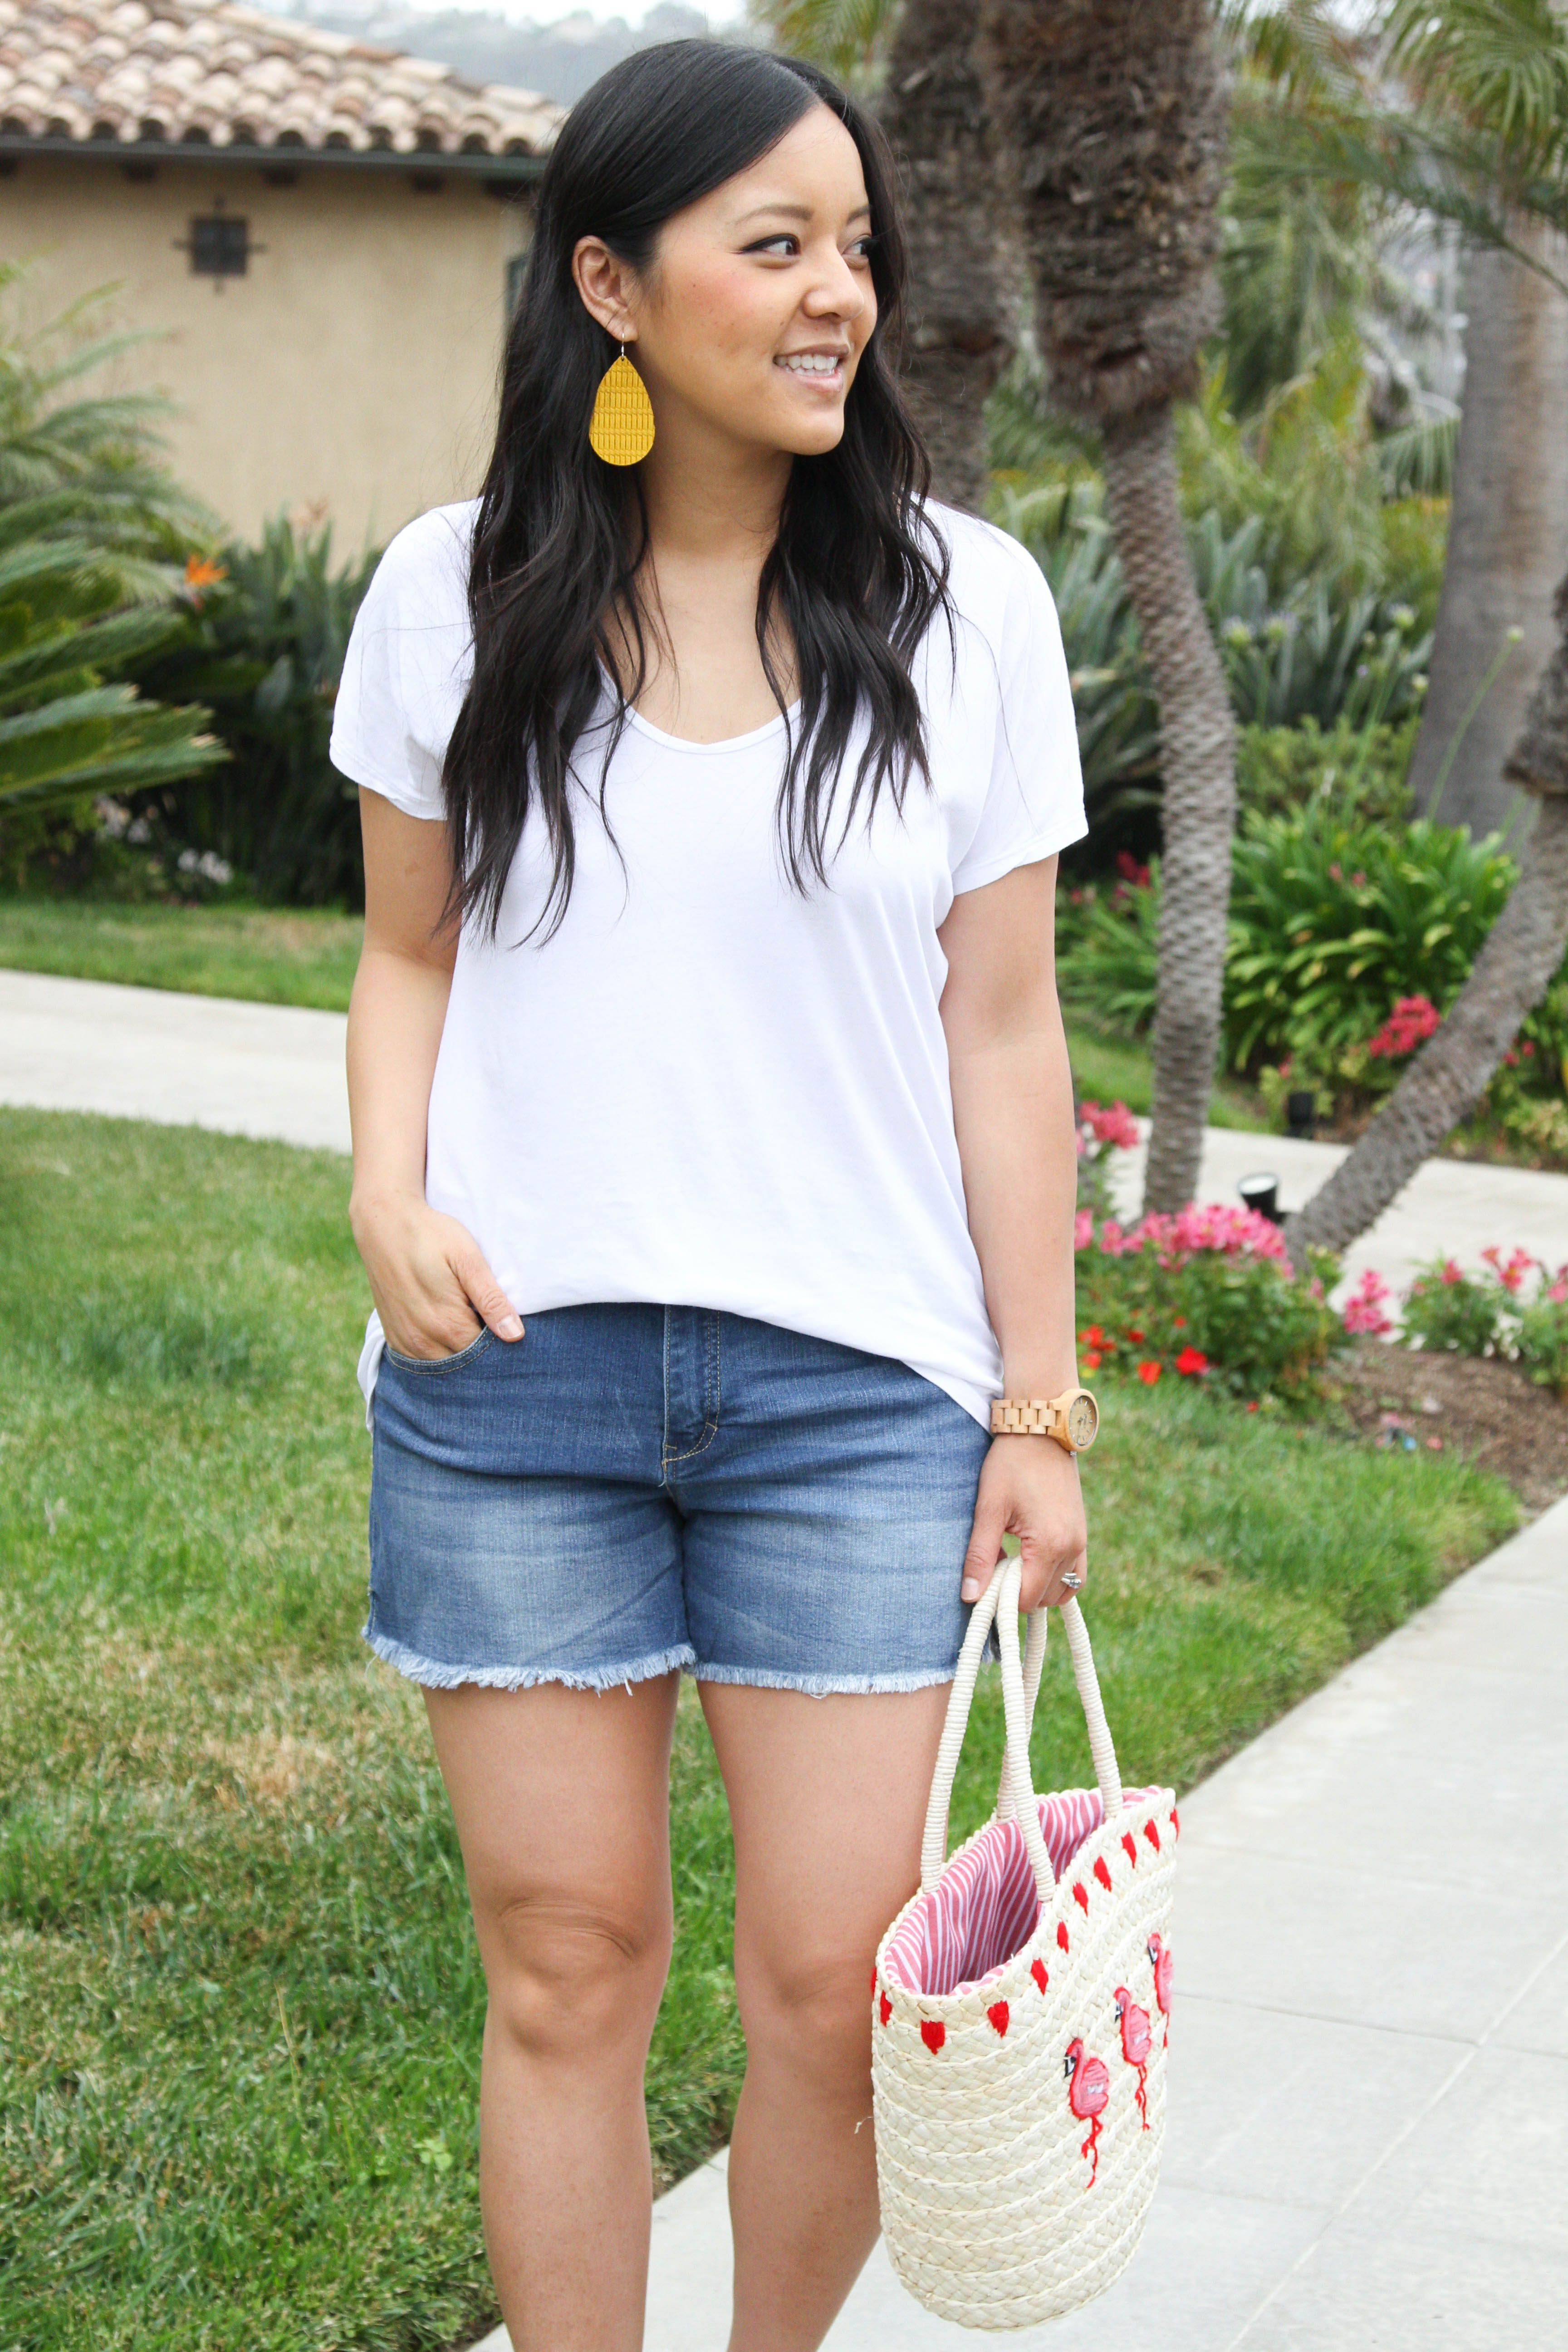 White Tee + Jean Shorts + Straw Tote + Statement Earrings #Exploring #getaway #jean shorts #long shorts #modest shorts #nike shorts #Outfits #Relaxing #shorts #shorts outfits #Summer #summer shorts #Swimming #WEEKEND